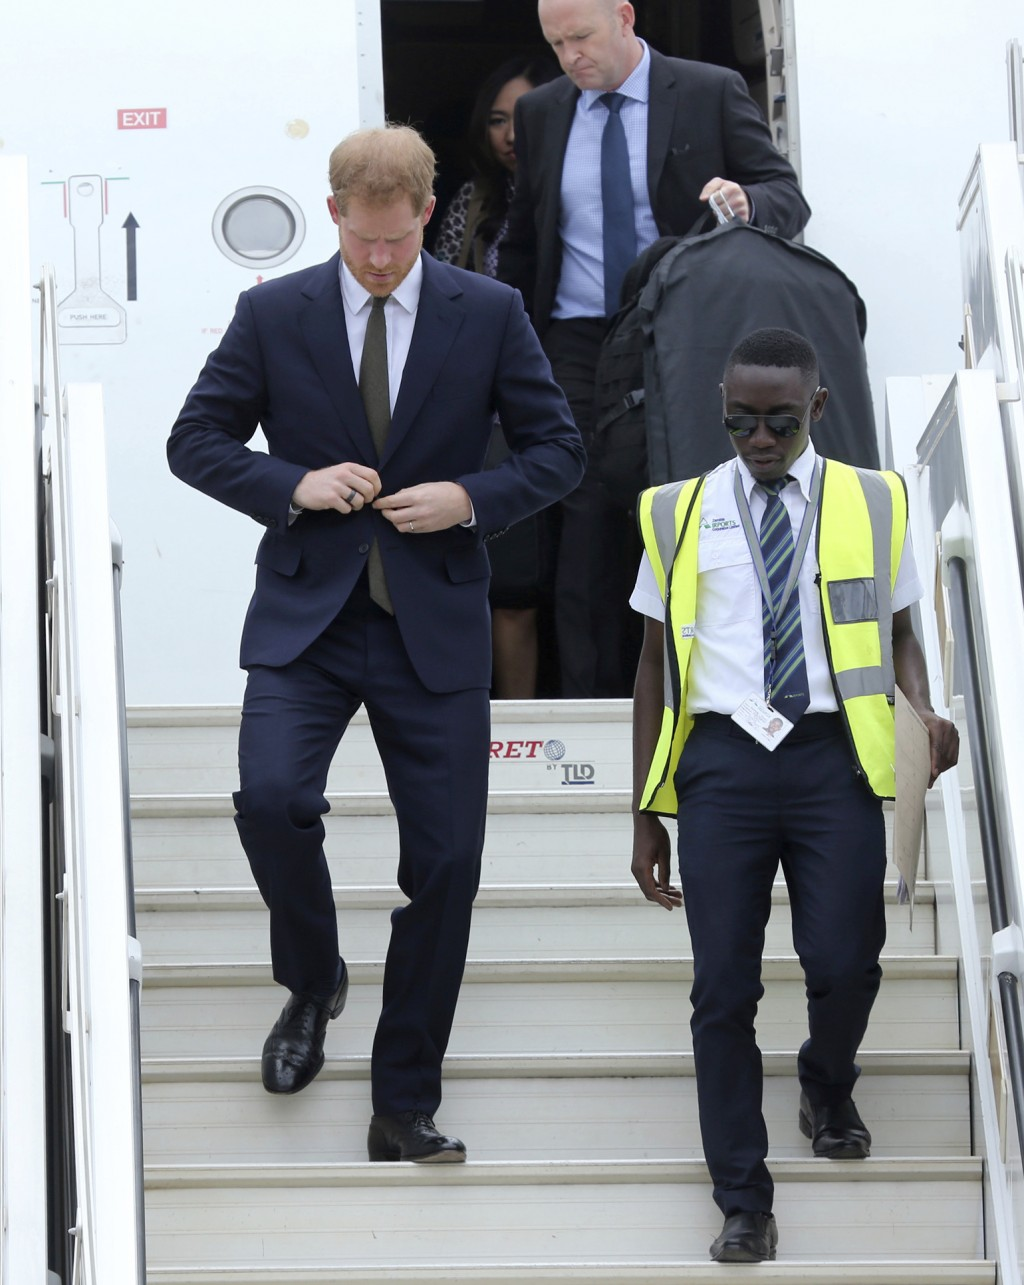 Britain's Prince Harry walks down the plane steps upon his arrival at Kenneth Kaunda airport in Lusaka, Monday, Nov. 26, 2018. Prince Harry is on a St